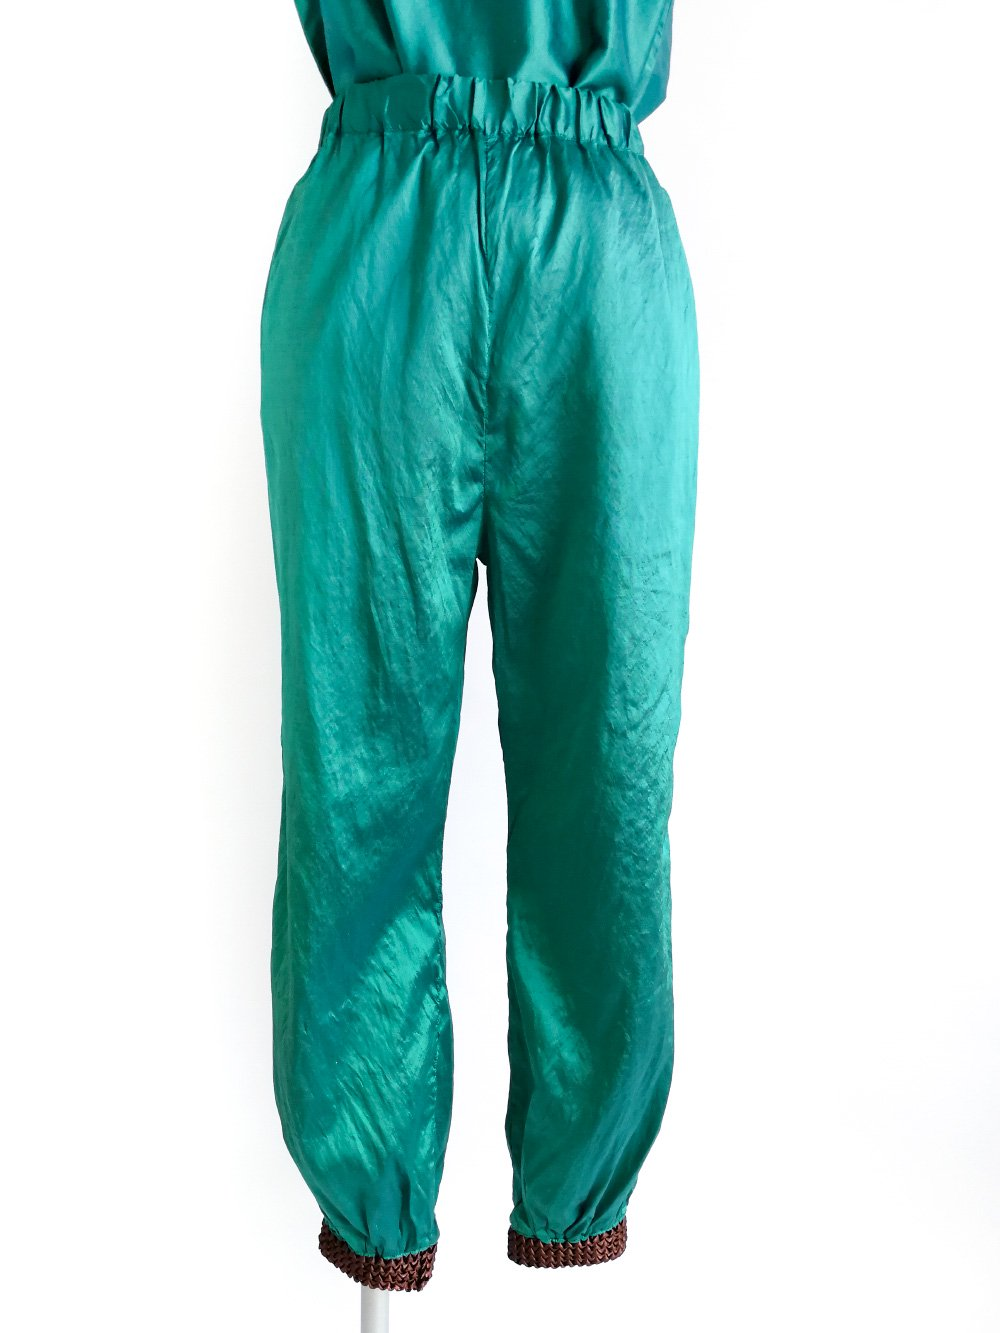 Balloon Pants / original blue